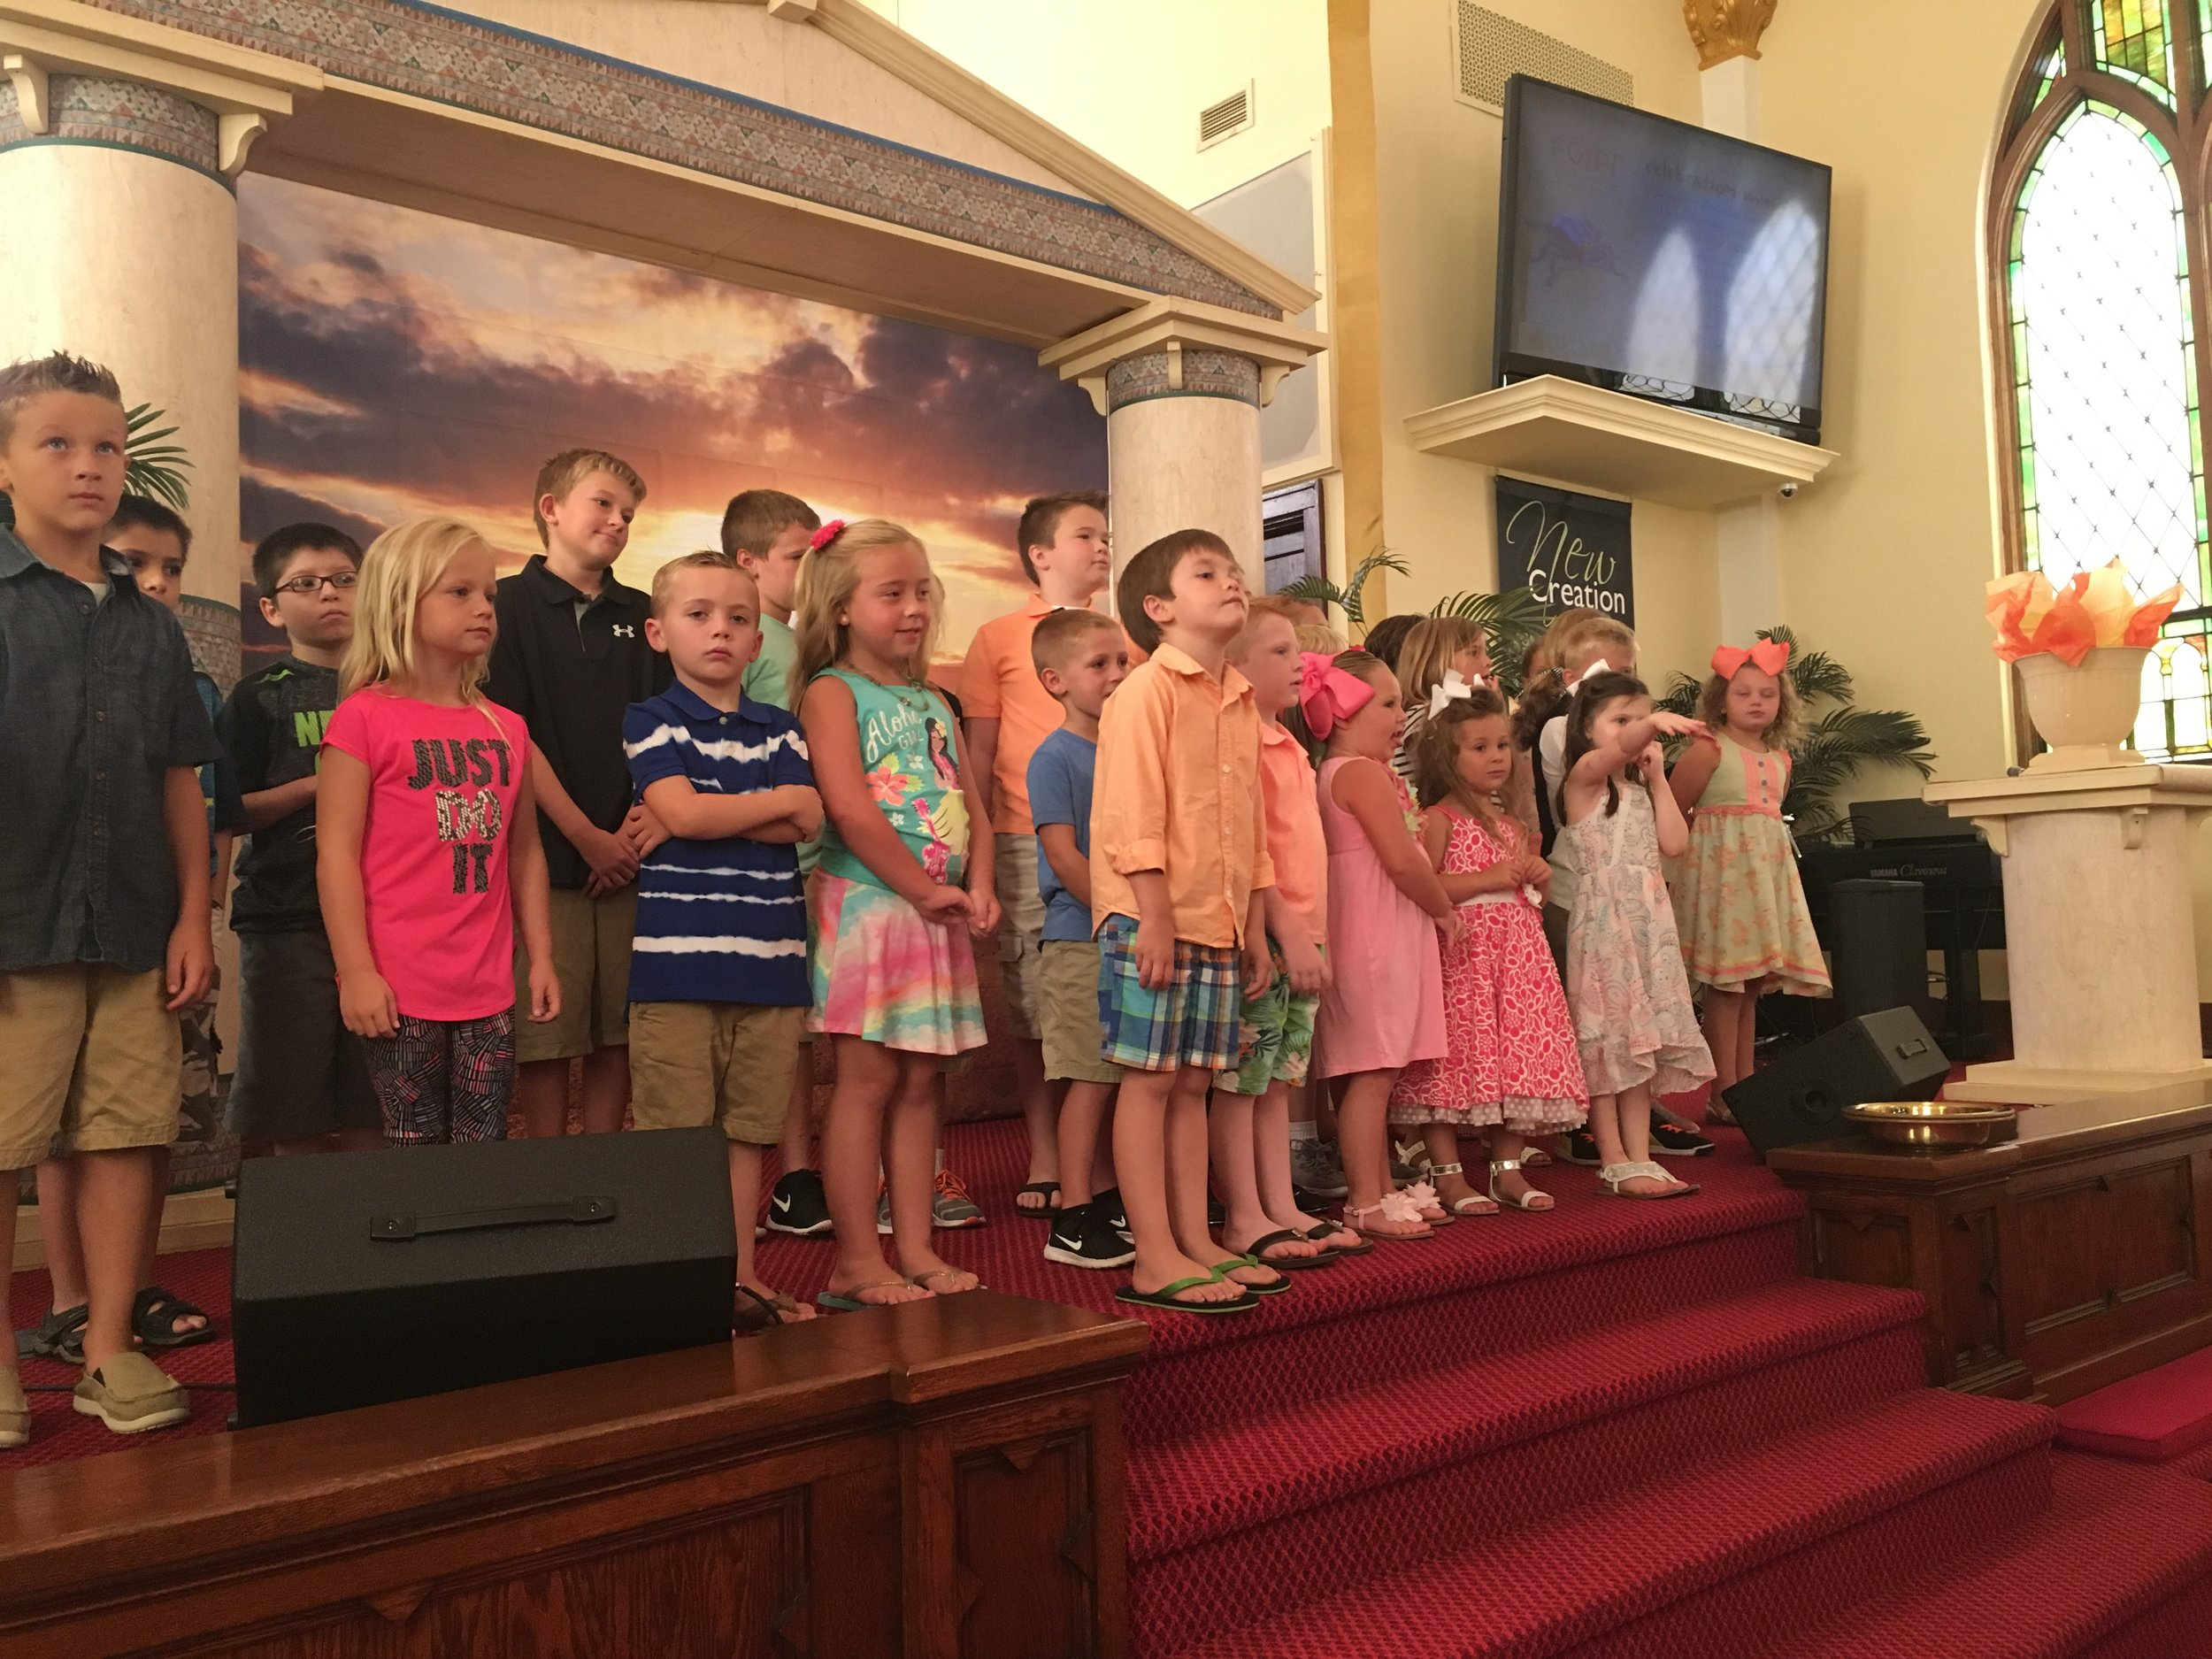 Vacation Bible School - In 2019 the dates were July 29- August 2.